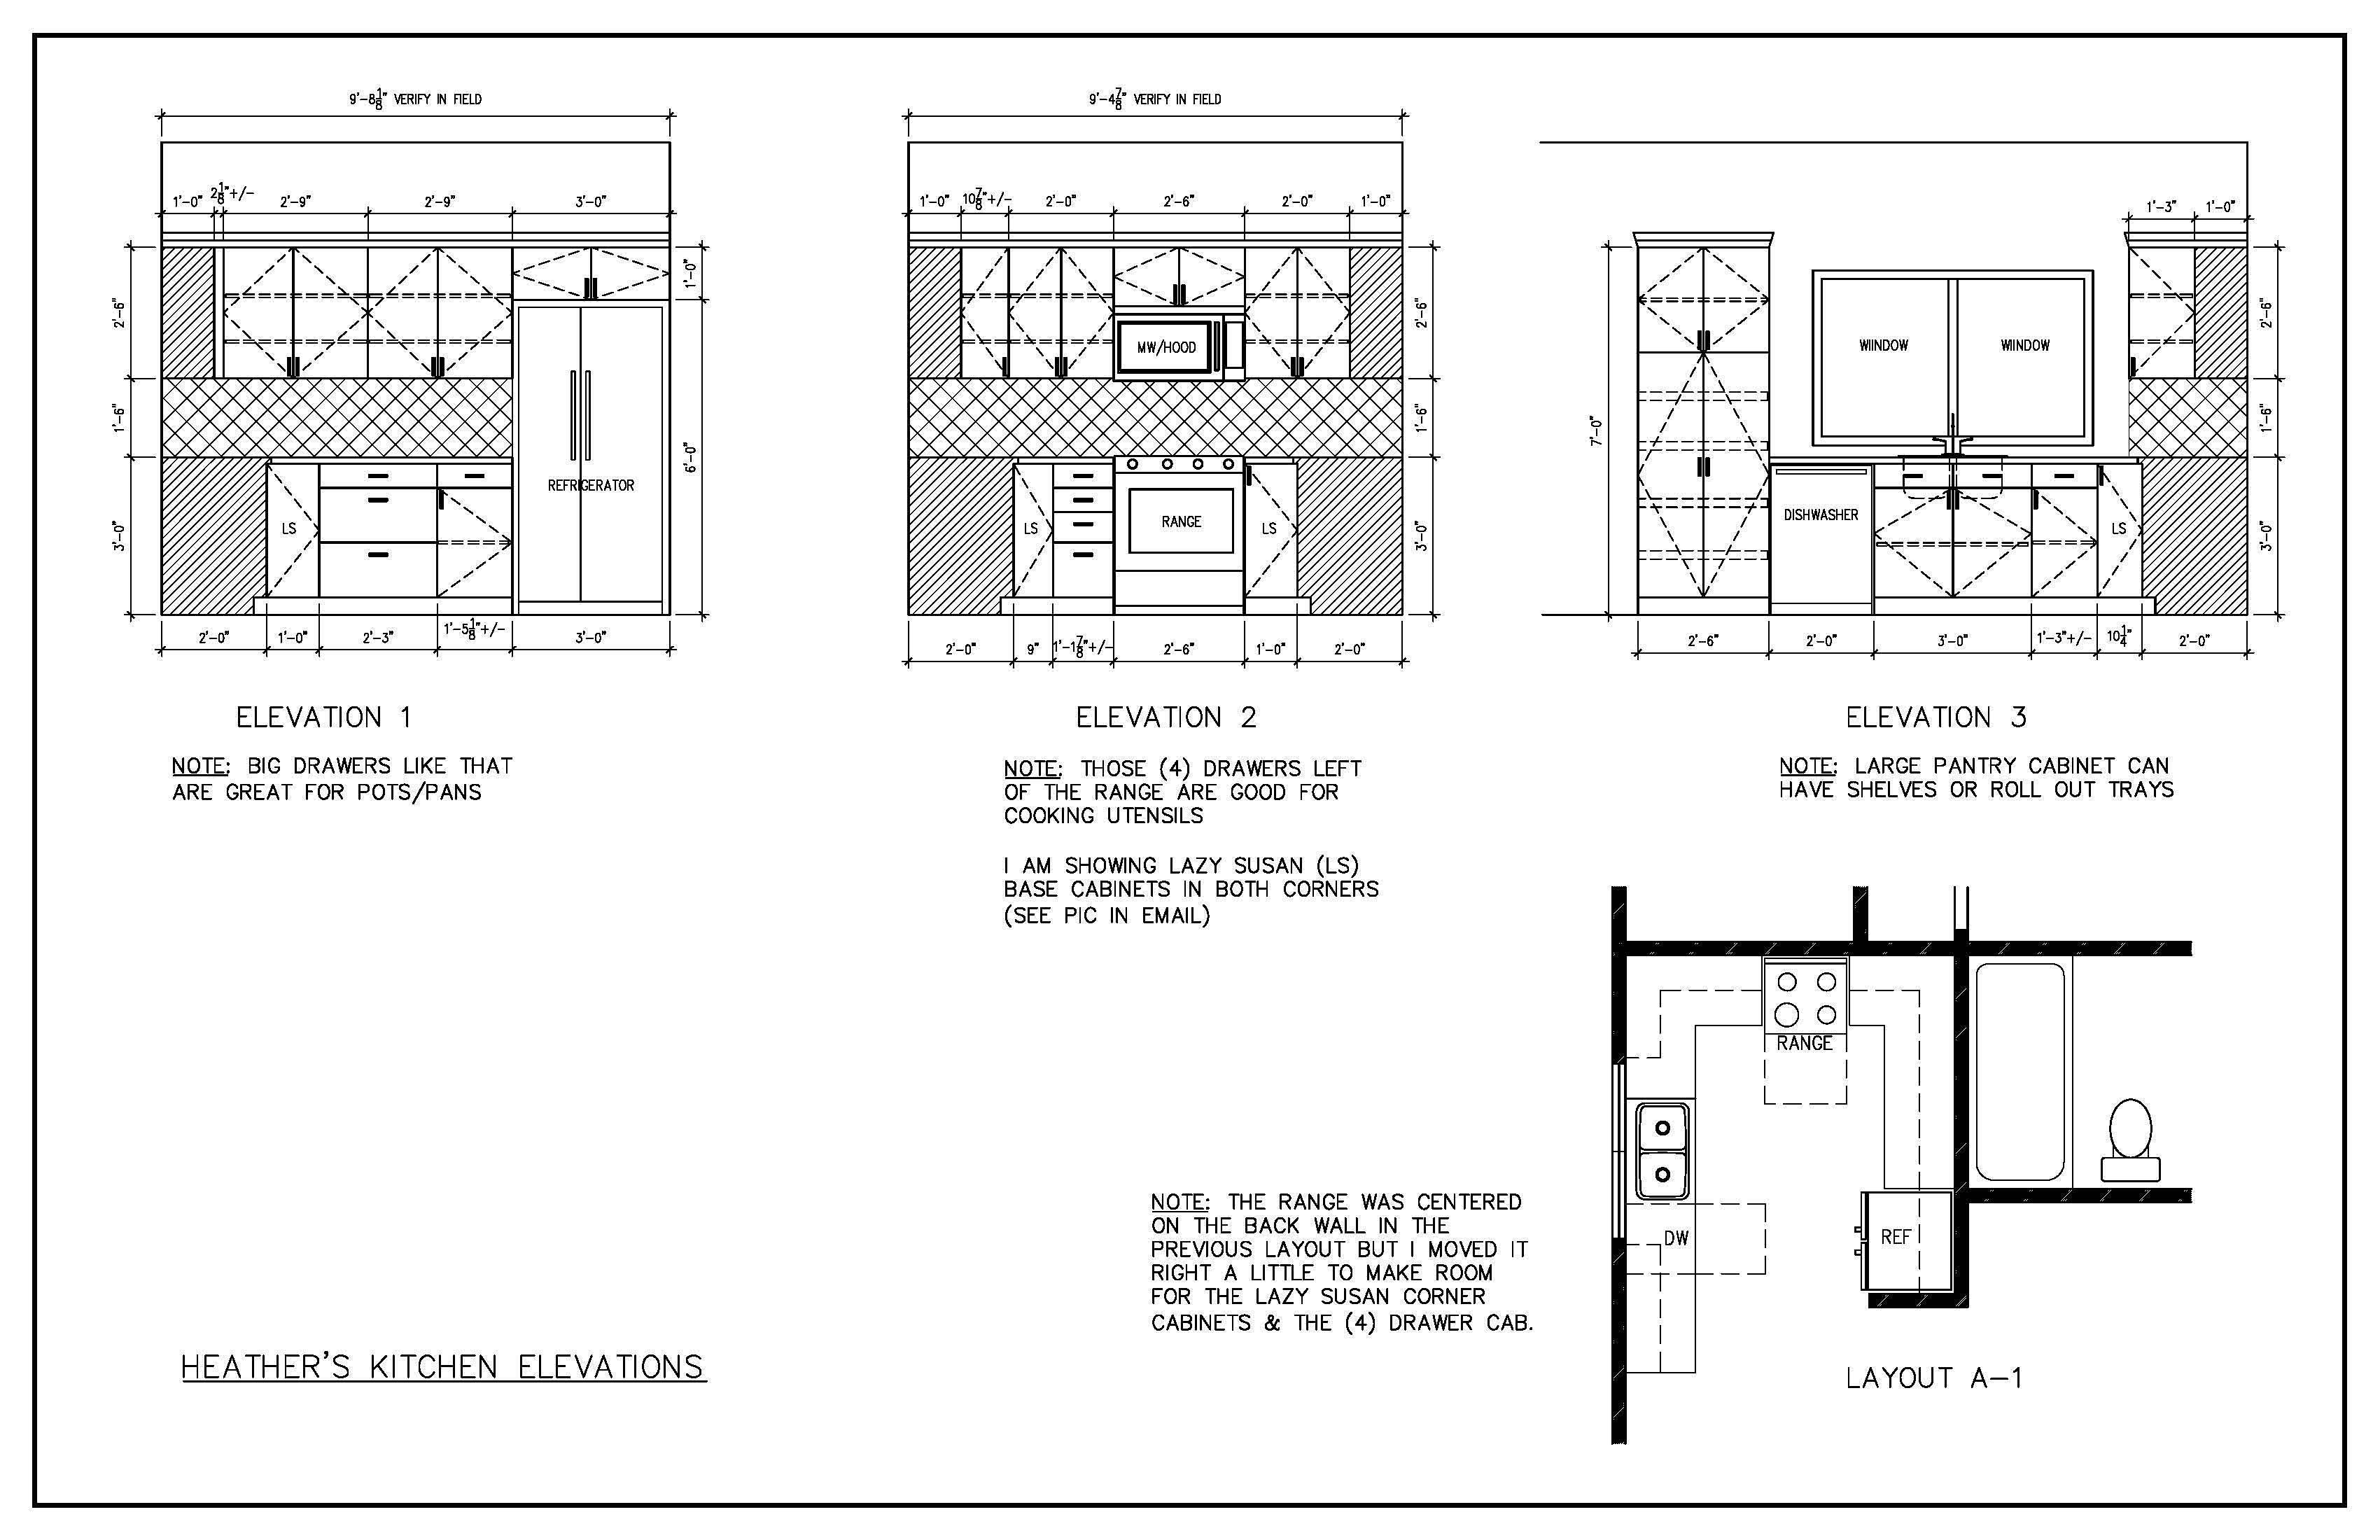 kitchen design layout for functional small kitchen kitchen design layout Kitchen Design Layout for Functional Small Kitchen WHomeStudio com Magazine Online Home Designs